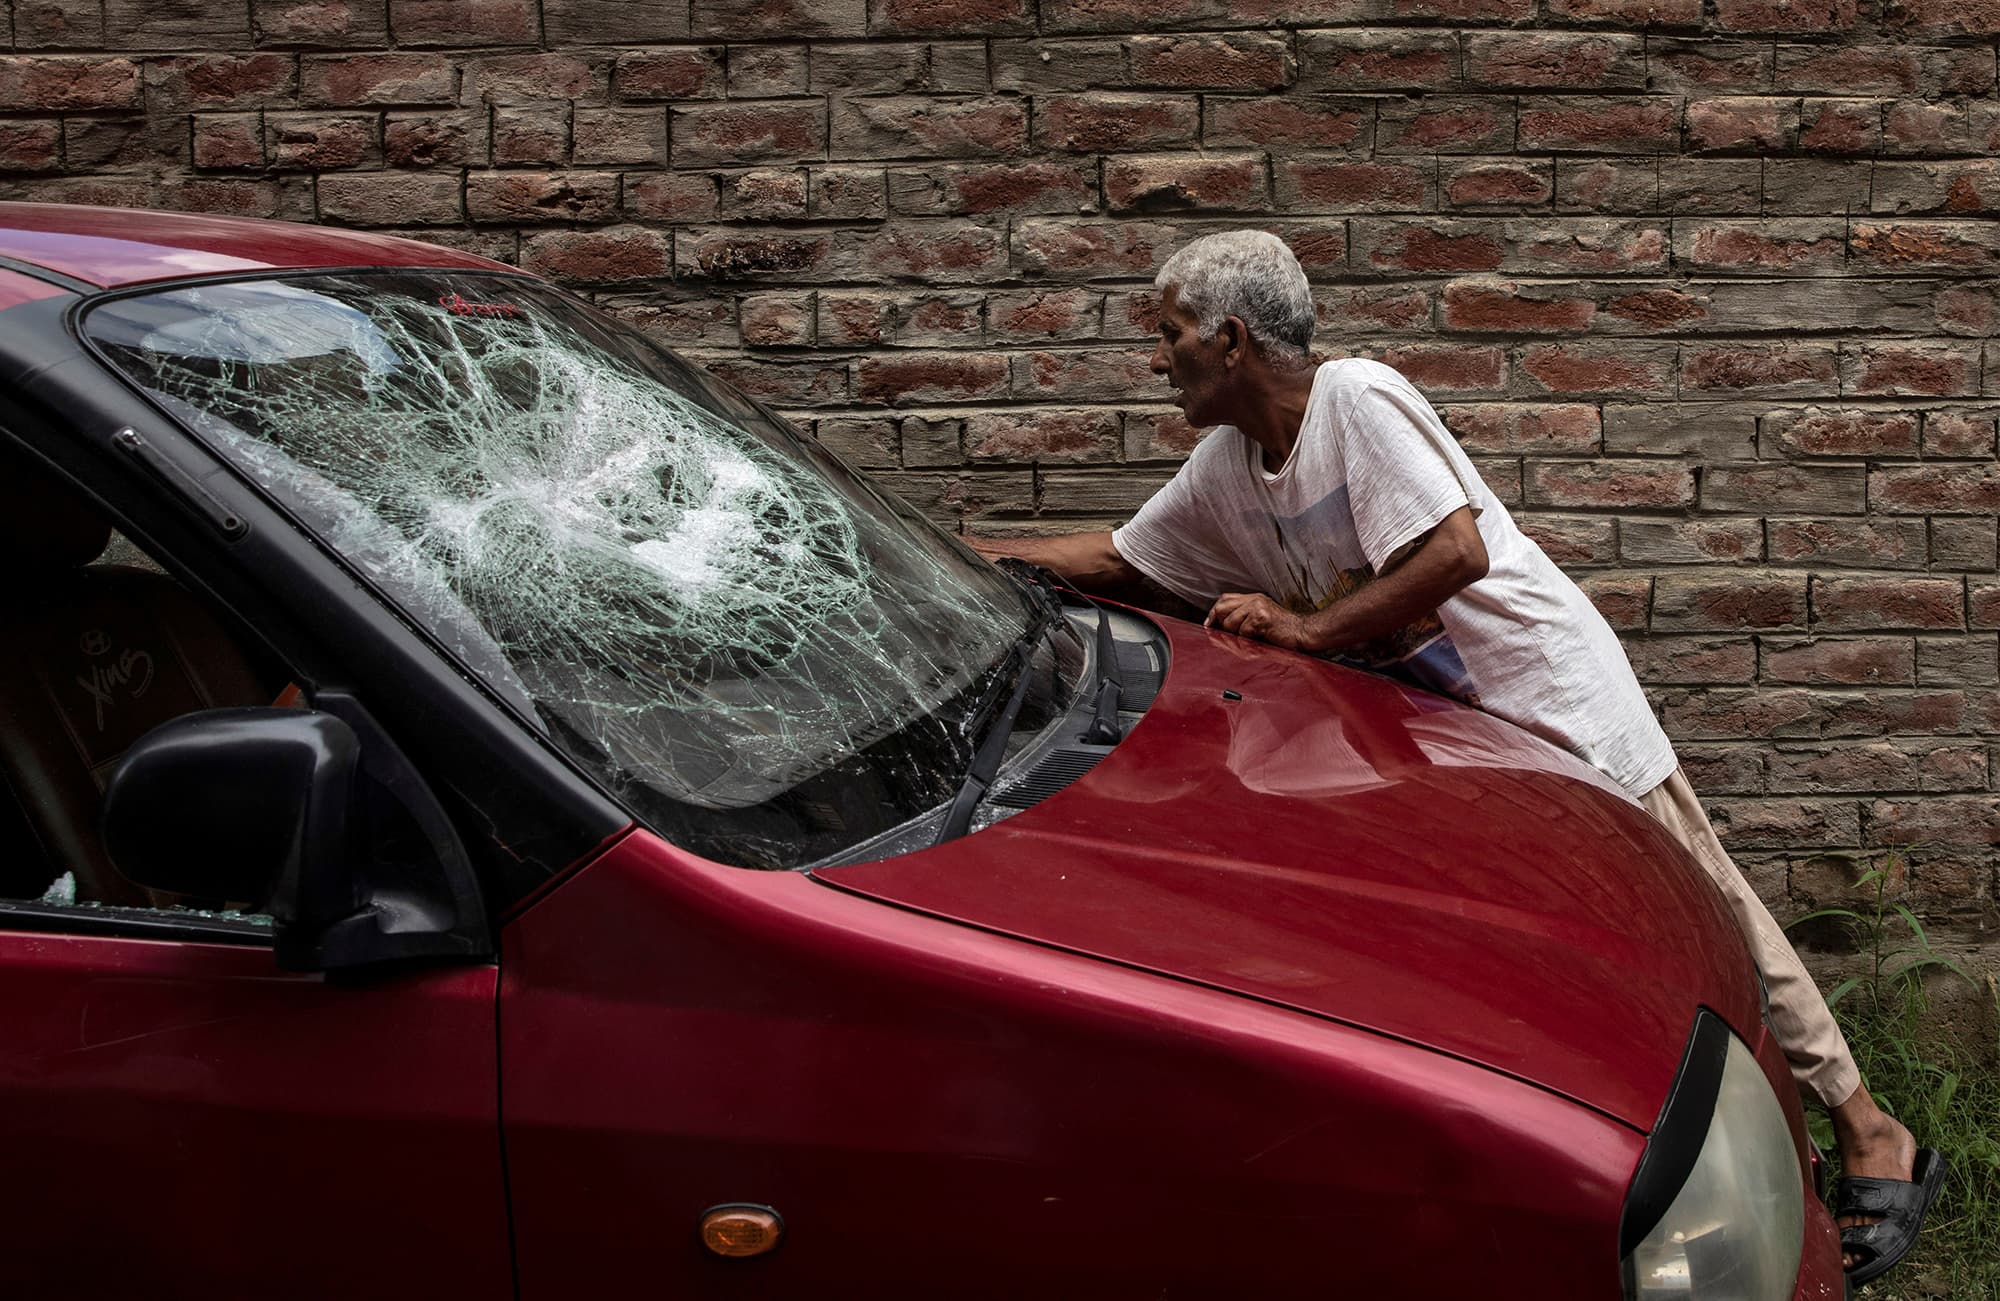 A Kashmiri man inspects his car which was allegedly damaged by Indian security forces after clashes between protesters and the security forces during curfew in Srinagar. ─ Reuters